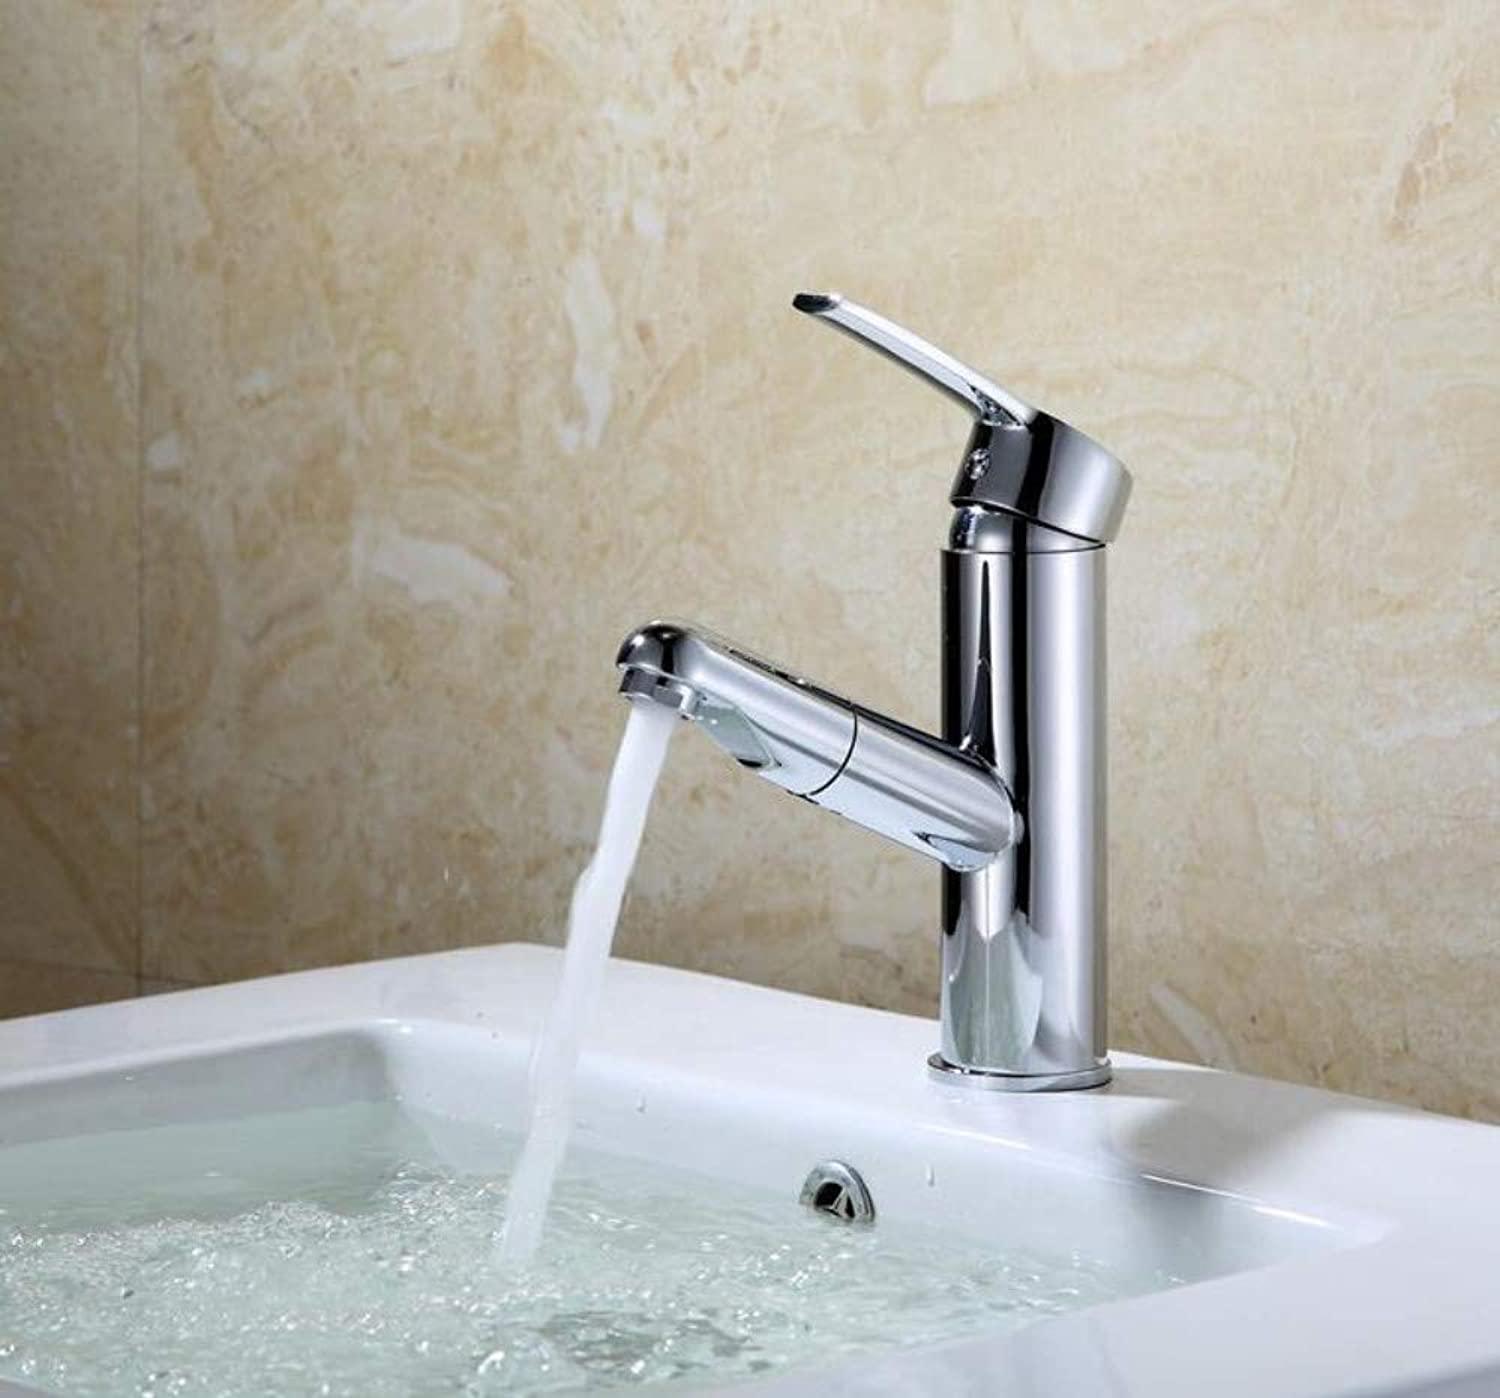 Copper Pull Faucet hot and Cold wash Basin wash Basin Single Hole Basin Faucet Washable Telescopic Faucet